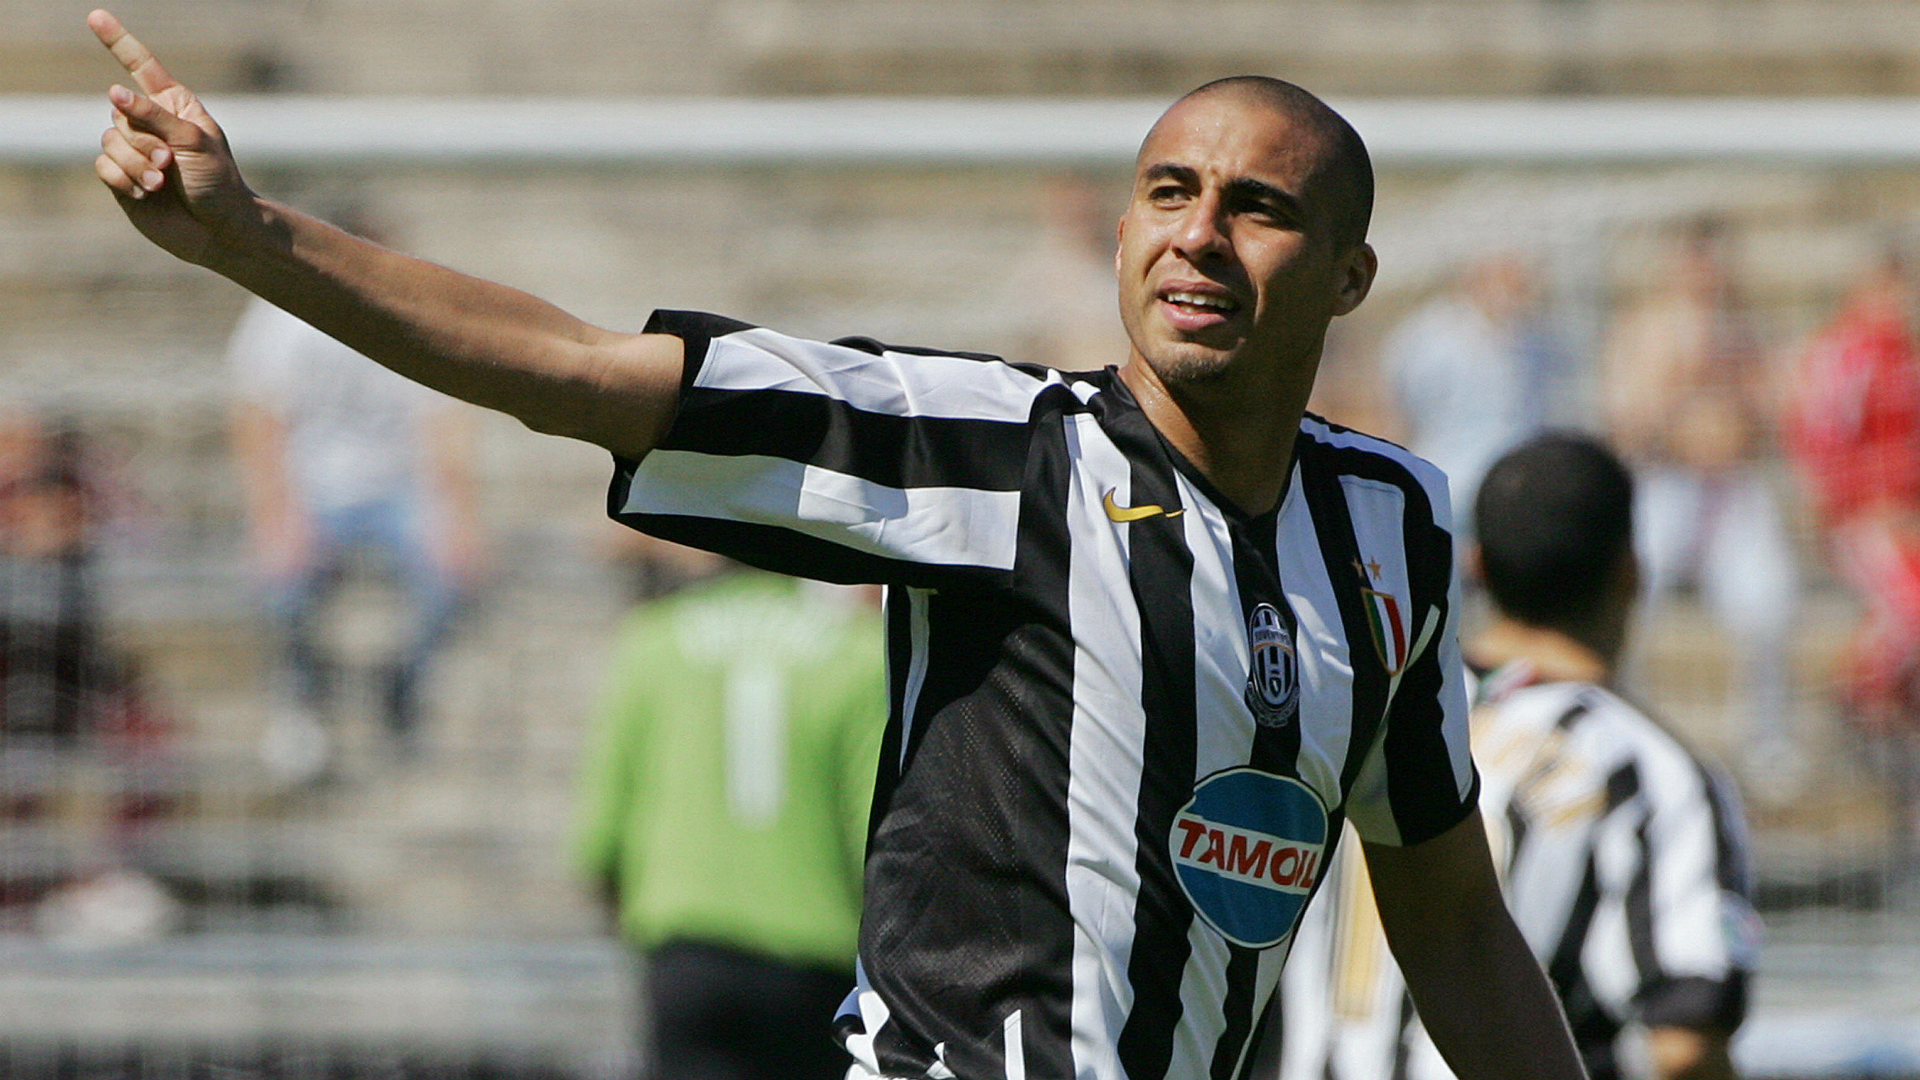 david trezeguet juventus - photo #39